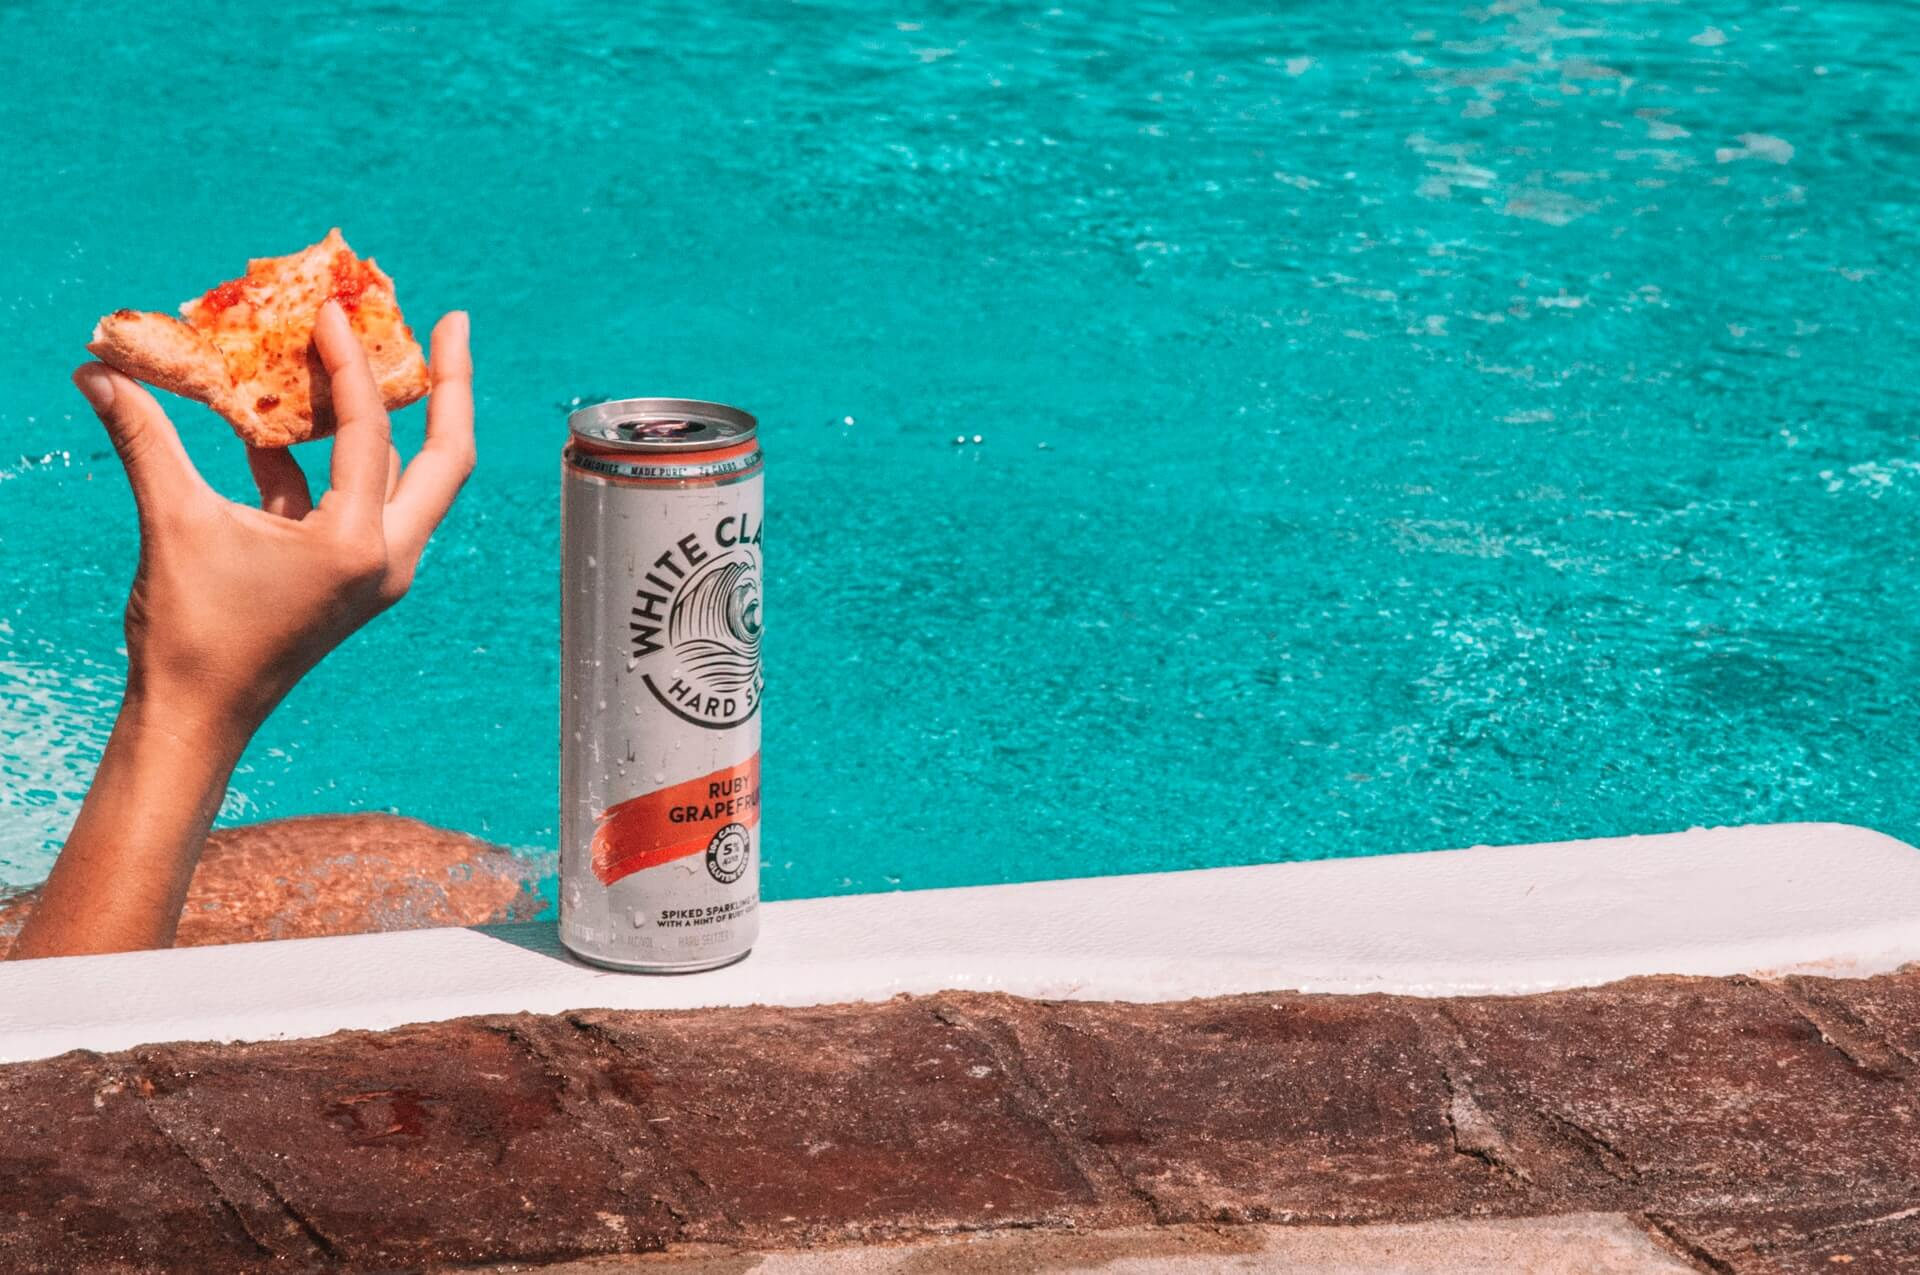 White Claw Ruby Grapefruit and pizza poolside